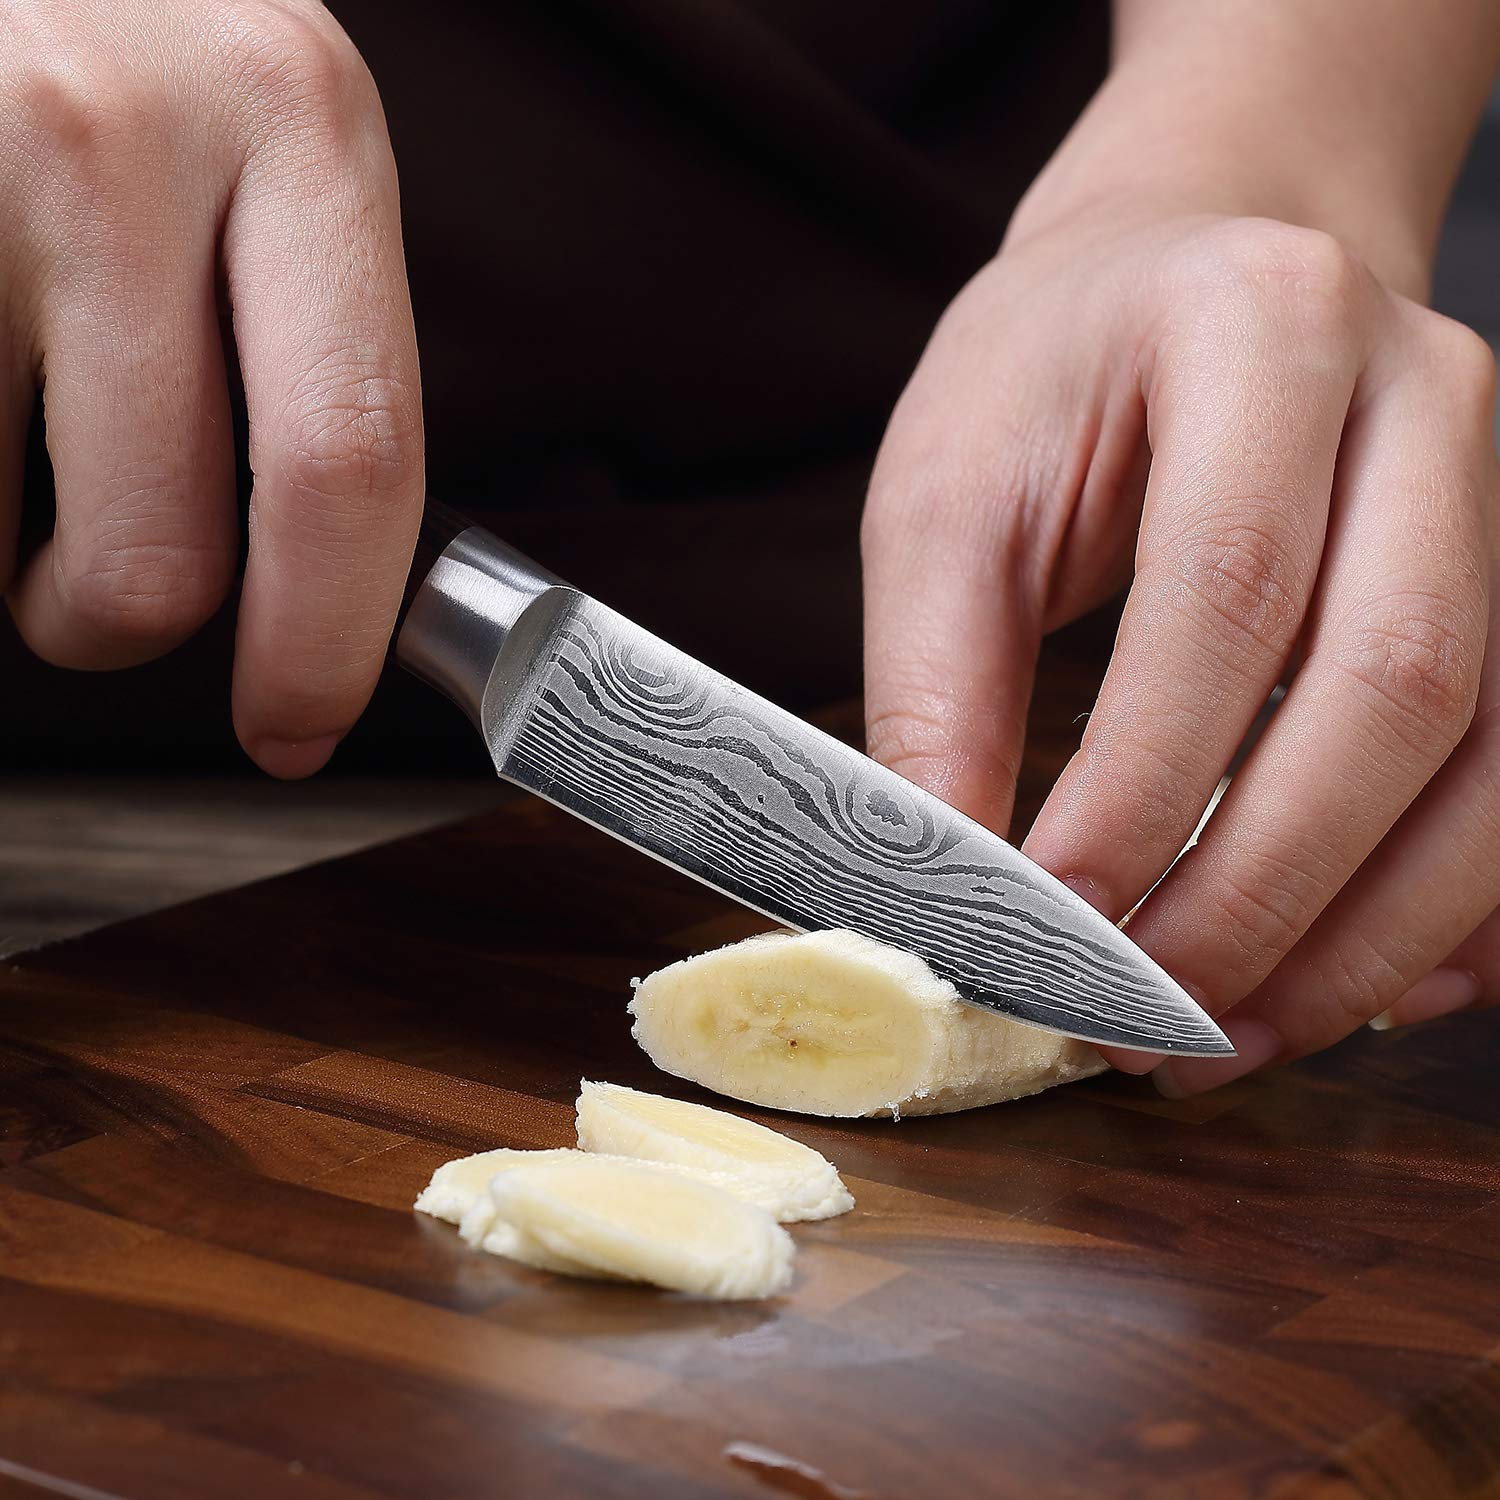 Paring Knife - PAUDIN 3.5 Inch Kitchen Knife N8 German High Carbon Stainless Steel Knife, Fruit and Vegetable Cutting Chopping Carving Knives by PAUDIN (Image #3)